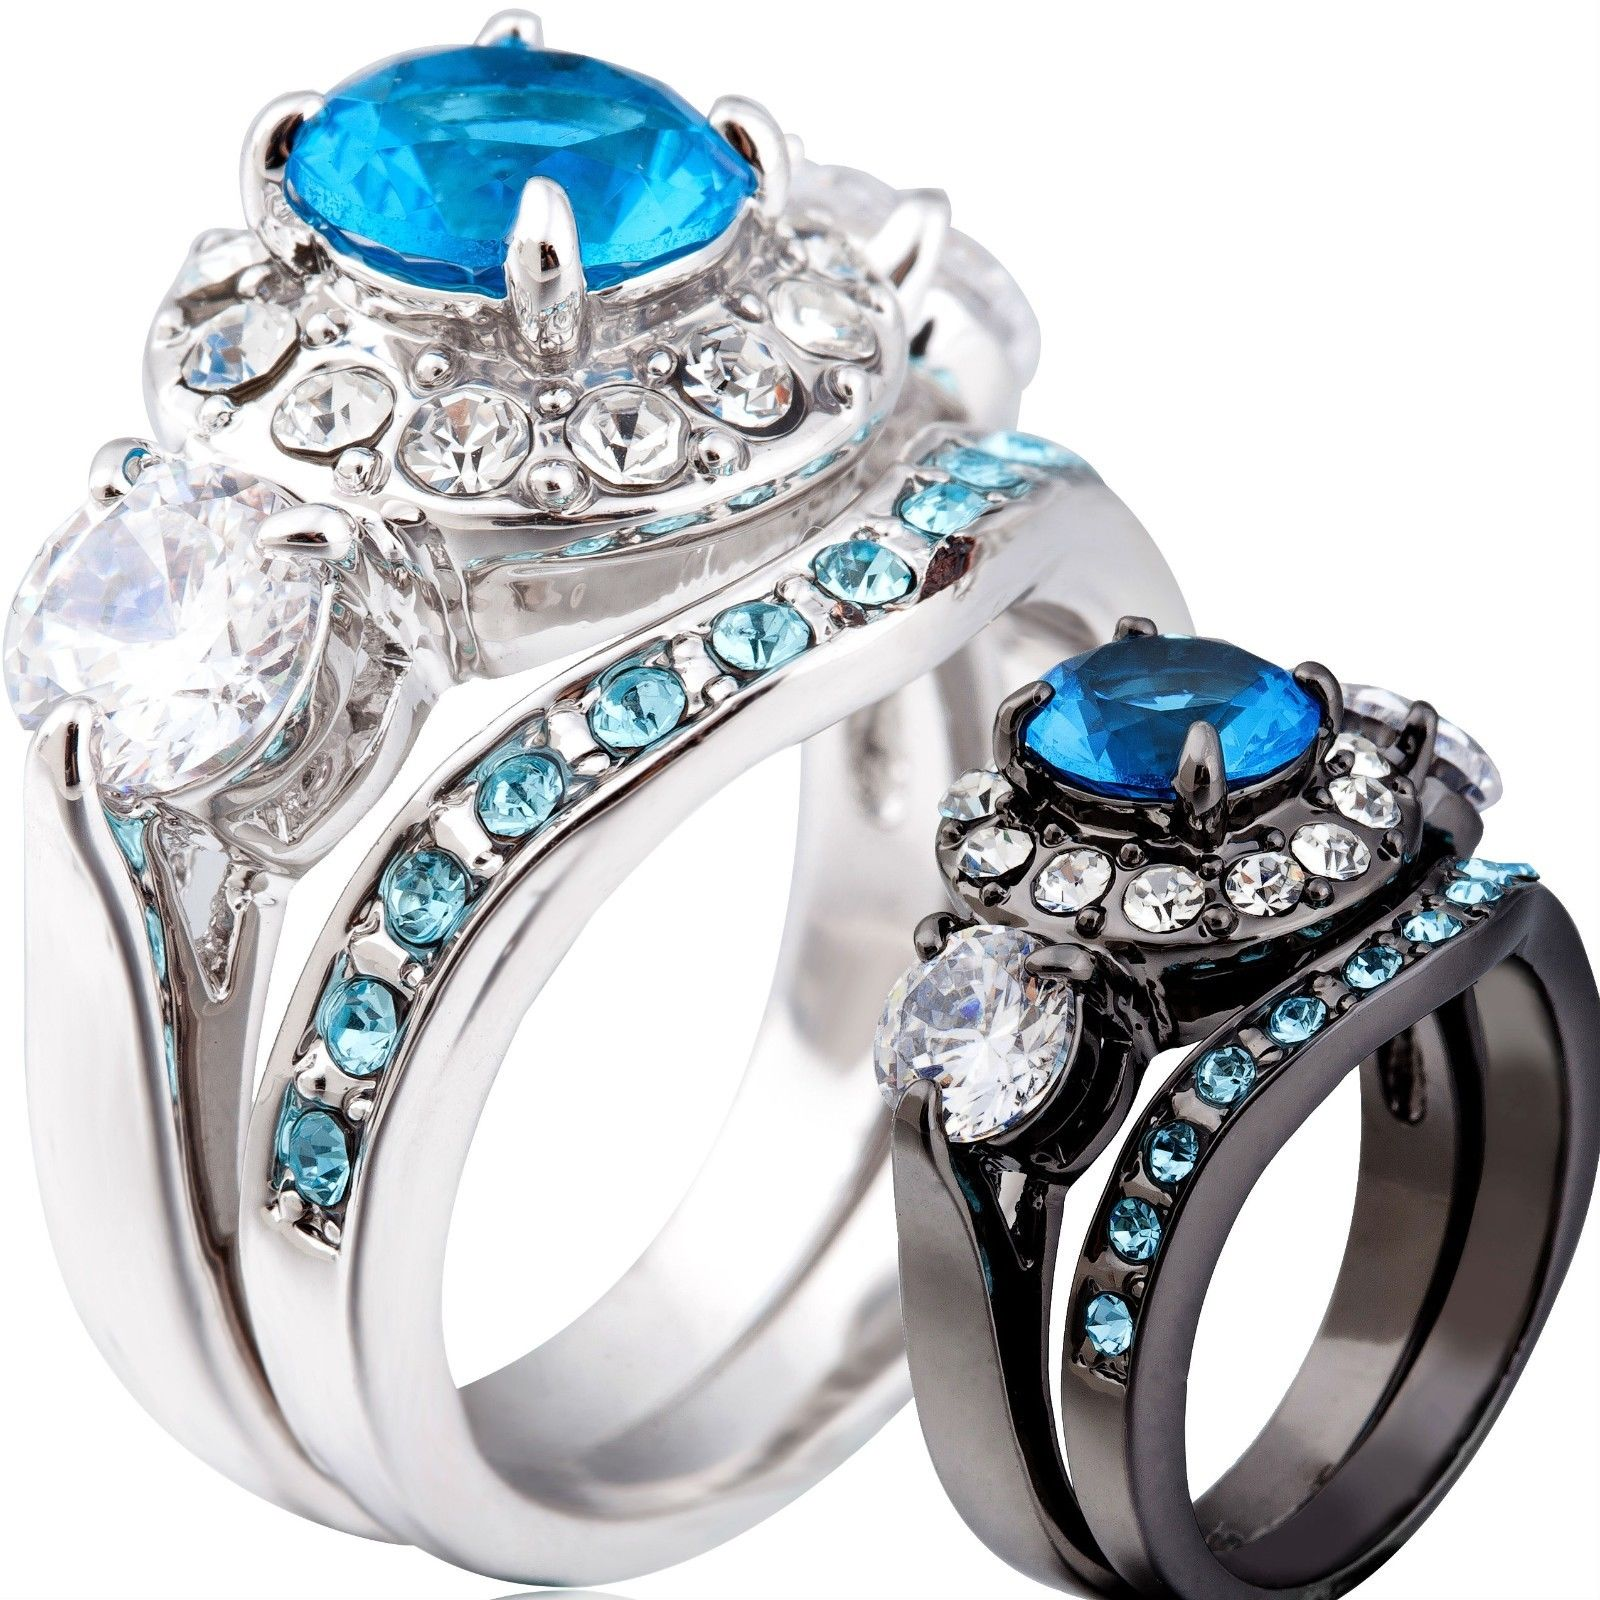 Size 5 6 7 8 9 10 11 Silver Black Rhodium Blue Sapphire Wedding Engagement Ri